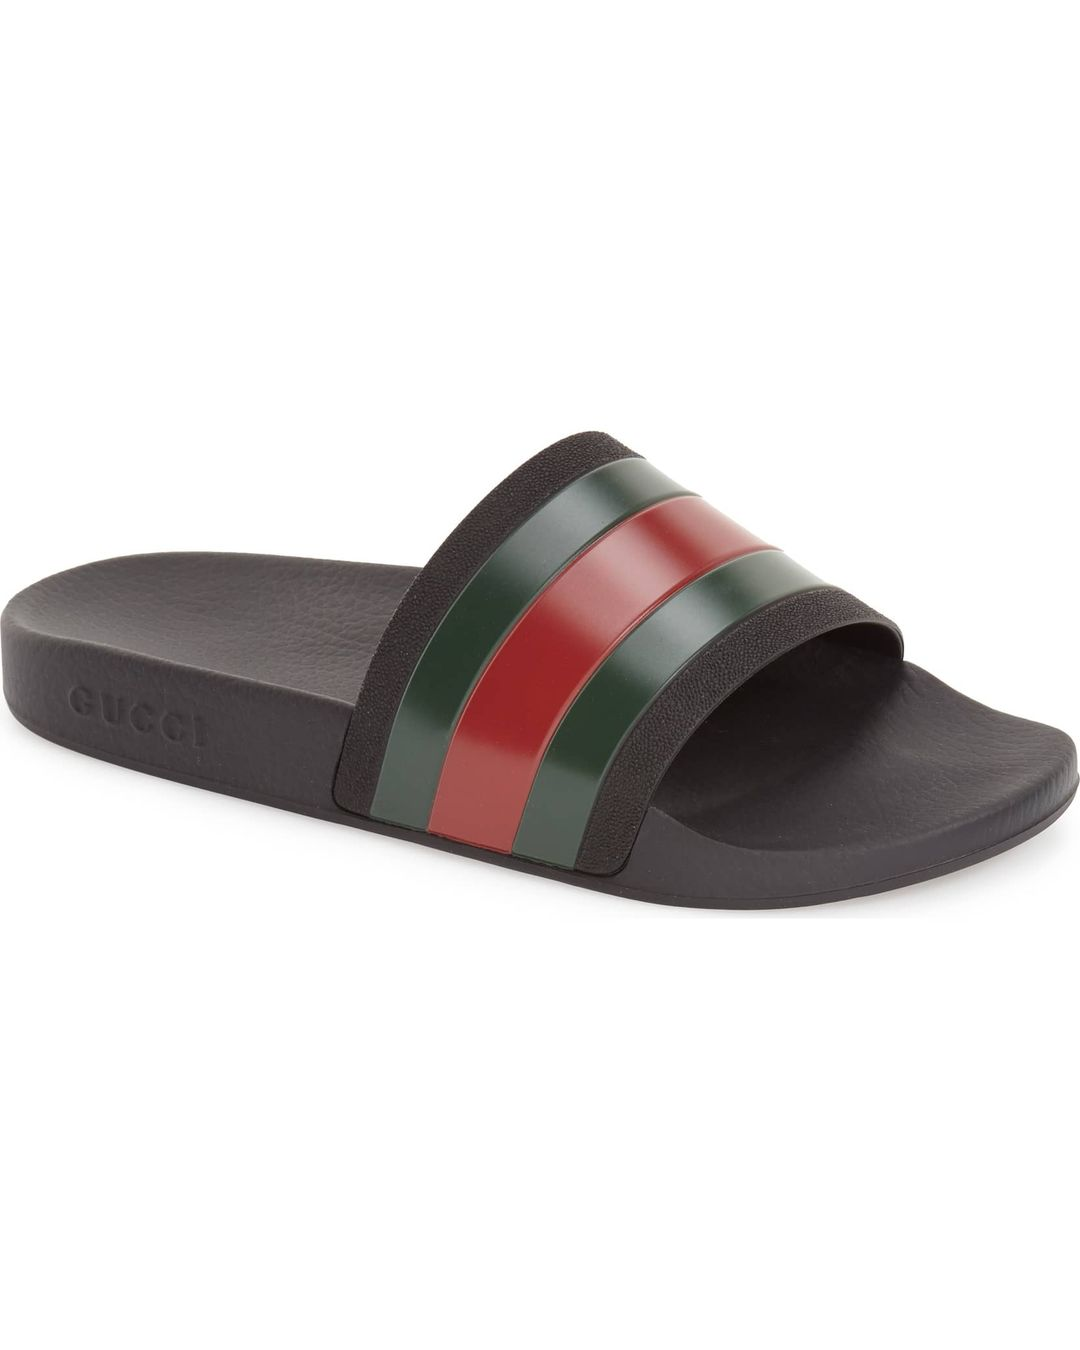 03daf79b4 Gucci Pursuit Slide Sandal Reviews and Sizing